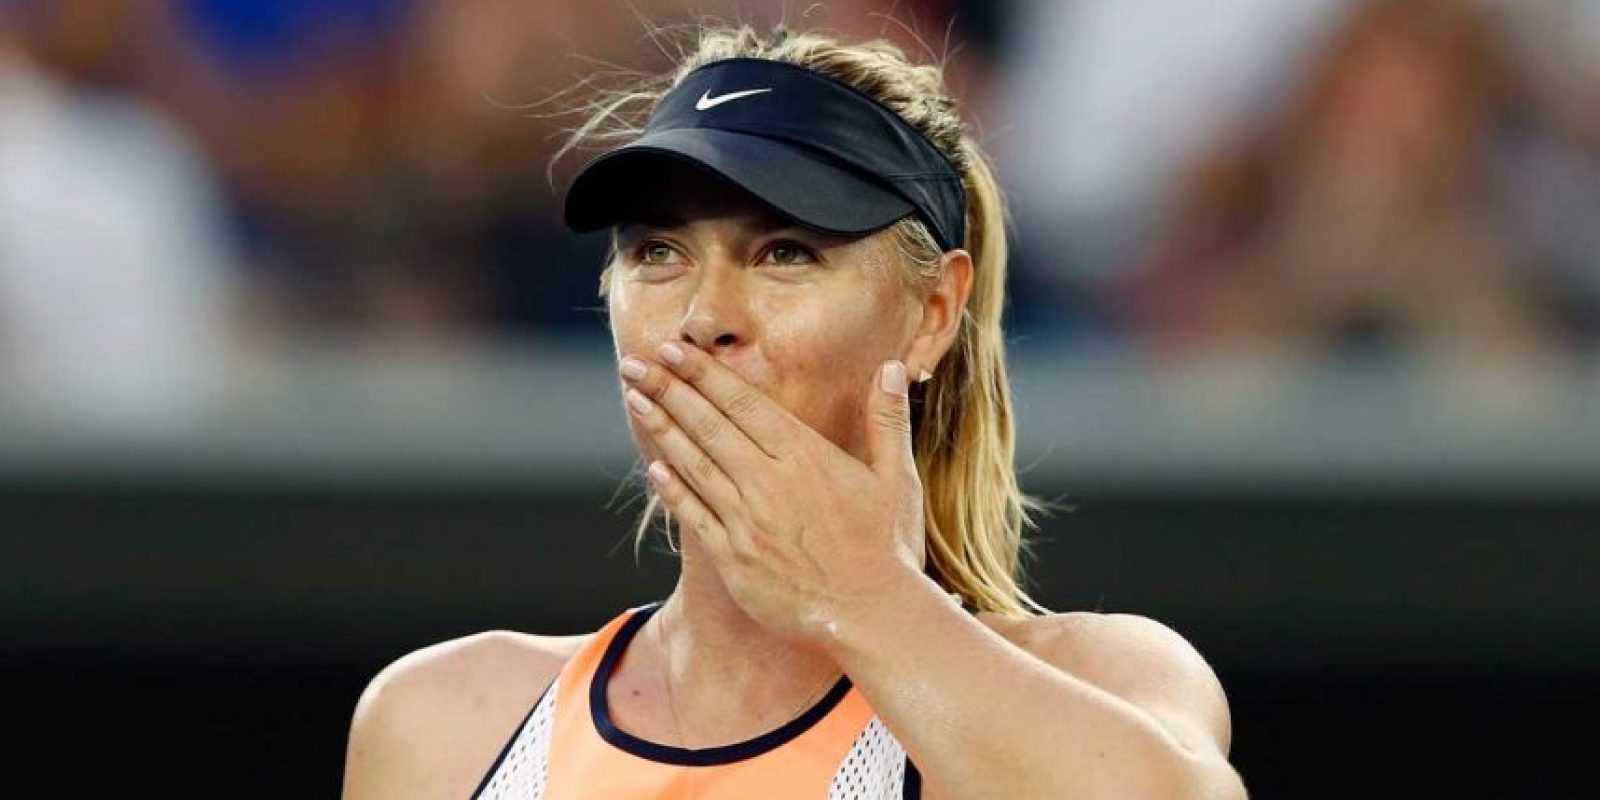 Maria Sharapova / Ranking WTA: 97º Foto: Getty Images